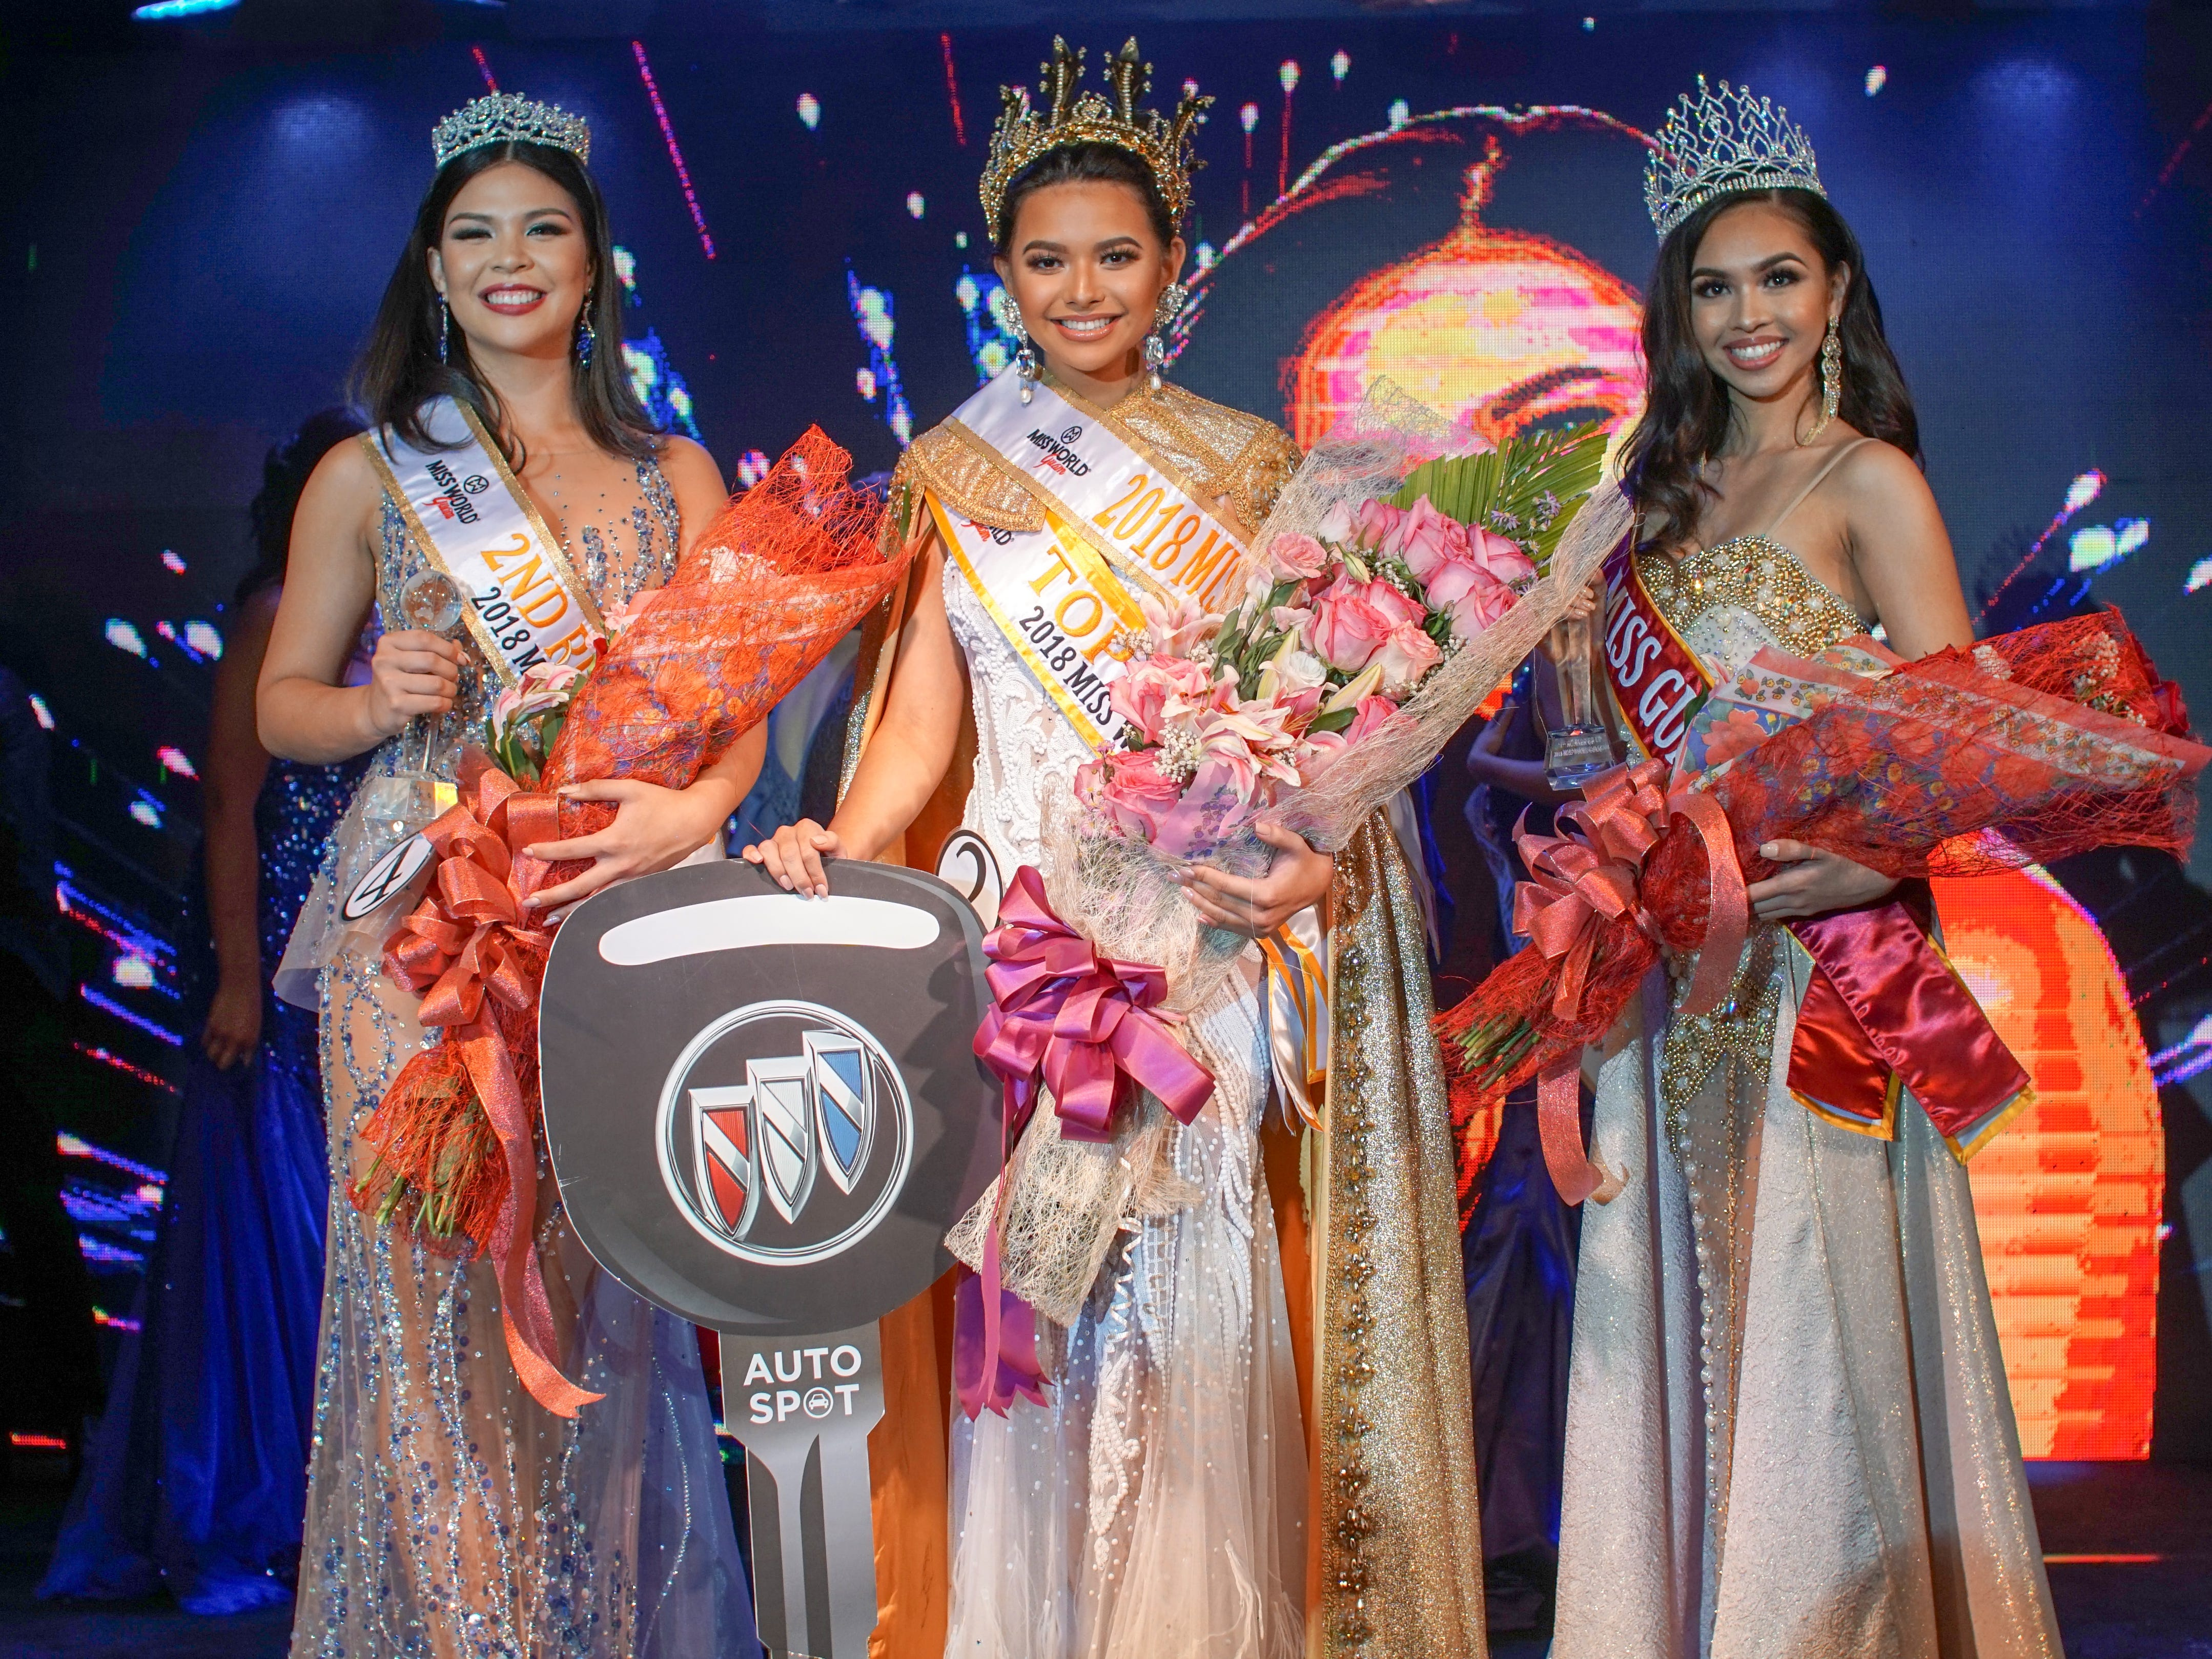 Left is 2nd Runner up Contestant #4 Mariana Quintanilla Kier, 18, of Sinajana and to the far right is, Contestant #5 Cyndal Abad, 18, of Dededo. She wins Ms. Asia Pacific International. Center is, Contestant #2 Gianna Camacho Sgambelluri, 18, of Barrigada, whom is crowned 2018 Miss World Guam. The event was held at Sheraton Laguna Guam Resort.